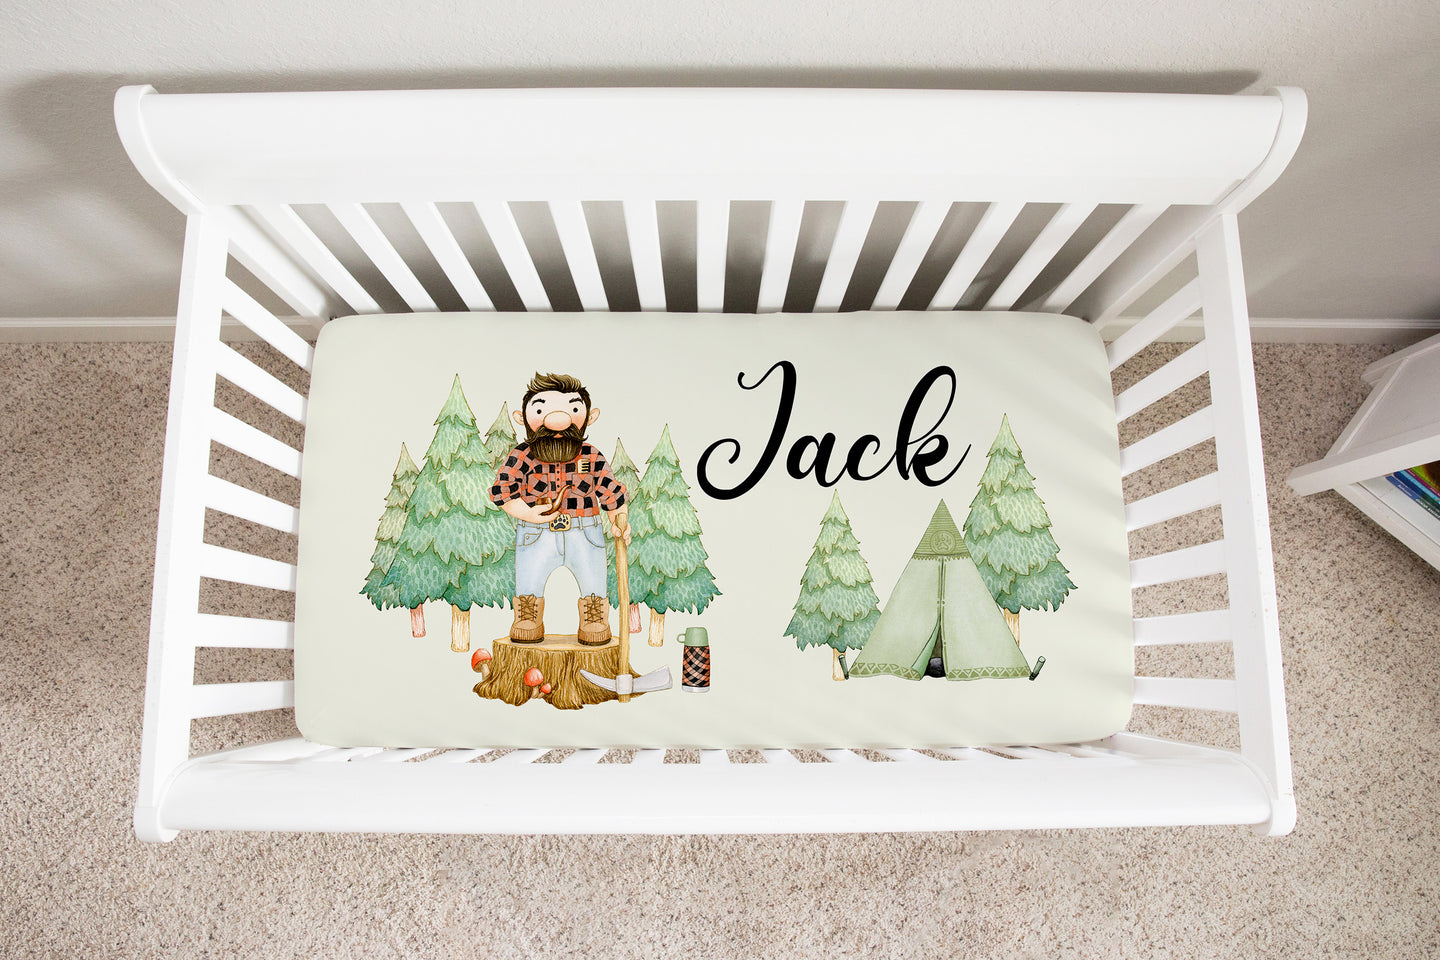 Jack Personalized Minky Crib Sheet, Lumberjack Nursery Bedding